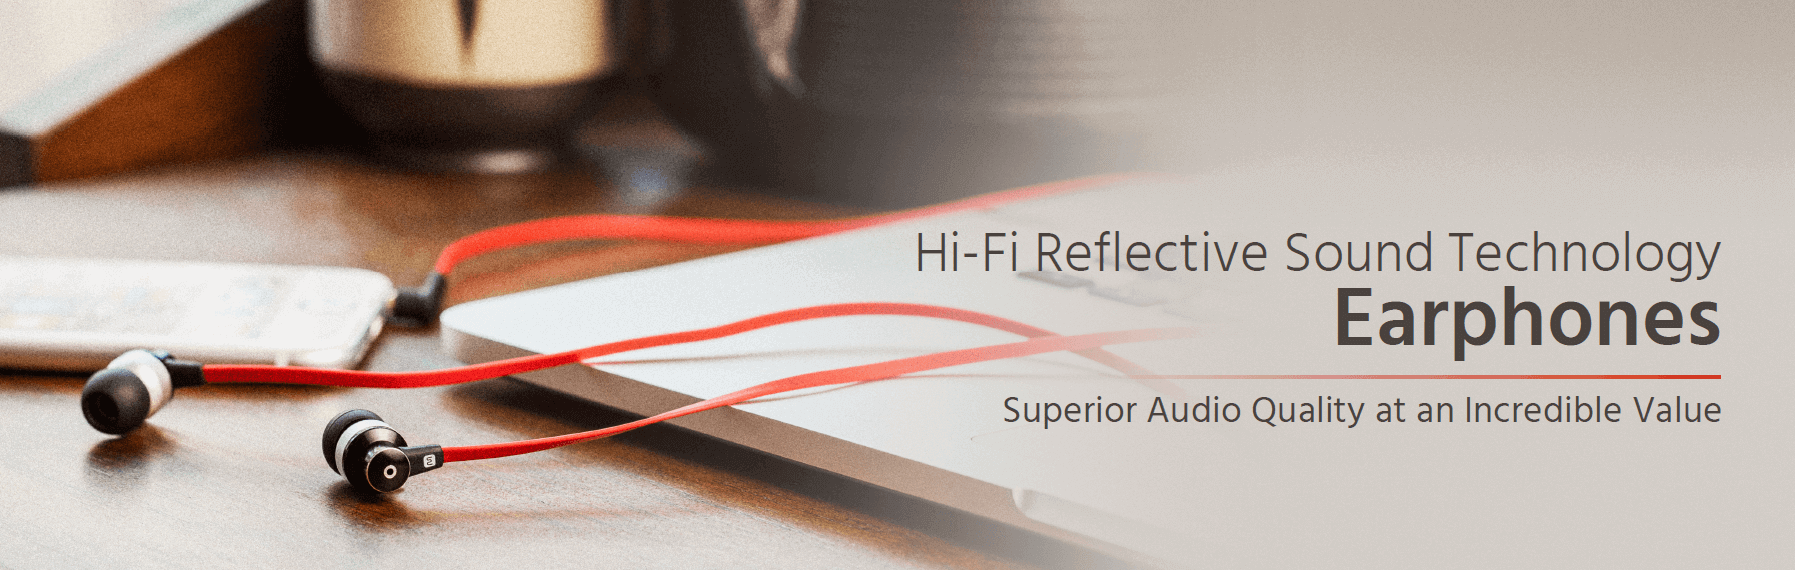 Hi-Fi Reflective Sound Technology Earphones